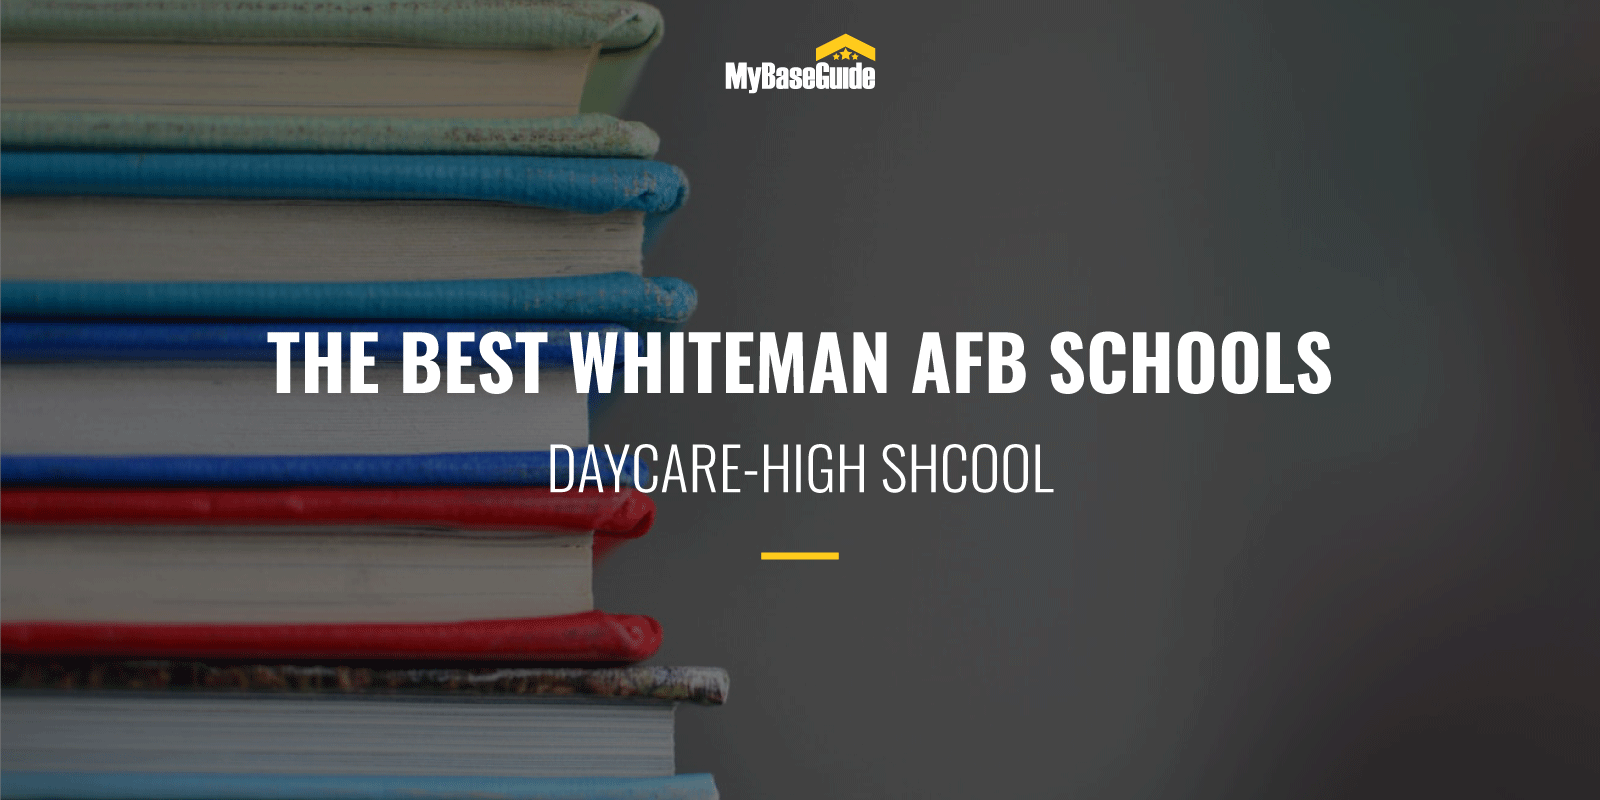 The Best Whiteman AFB Schools: Daycare - High School